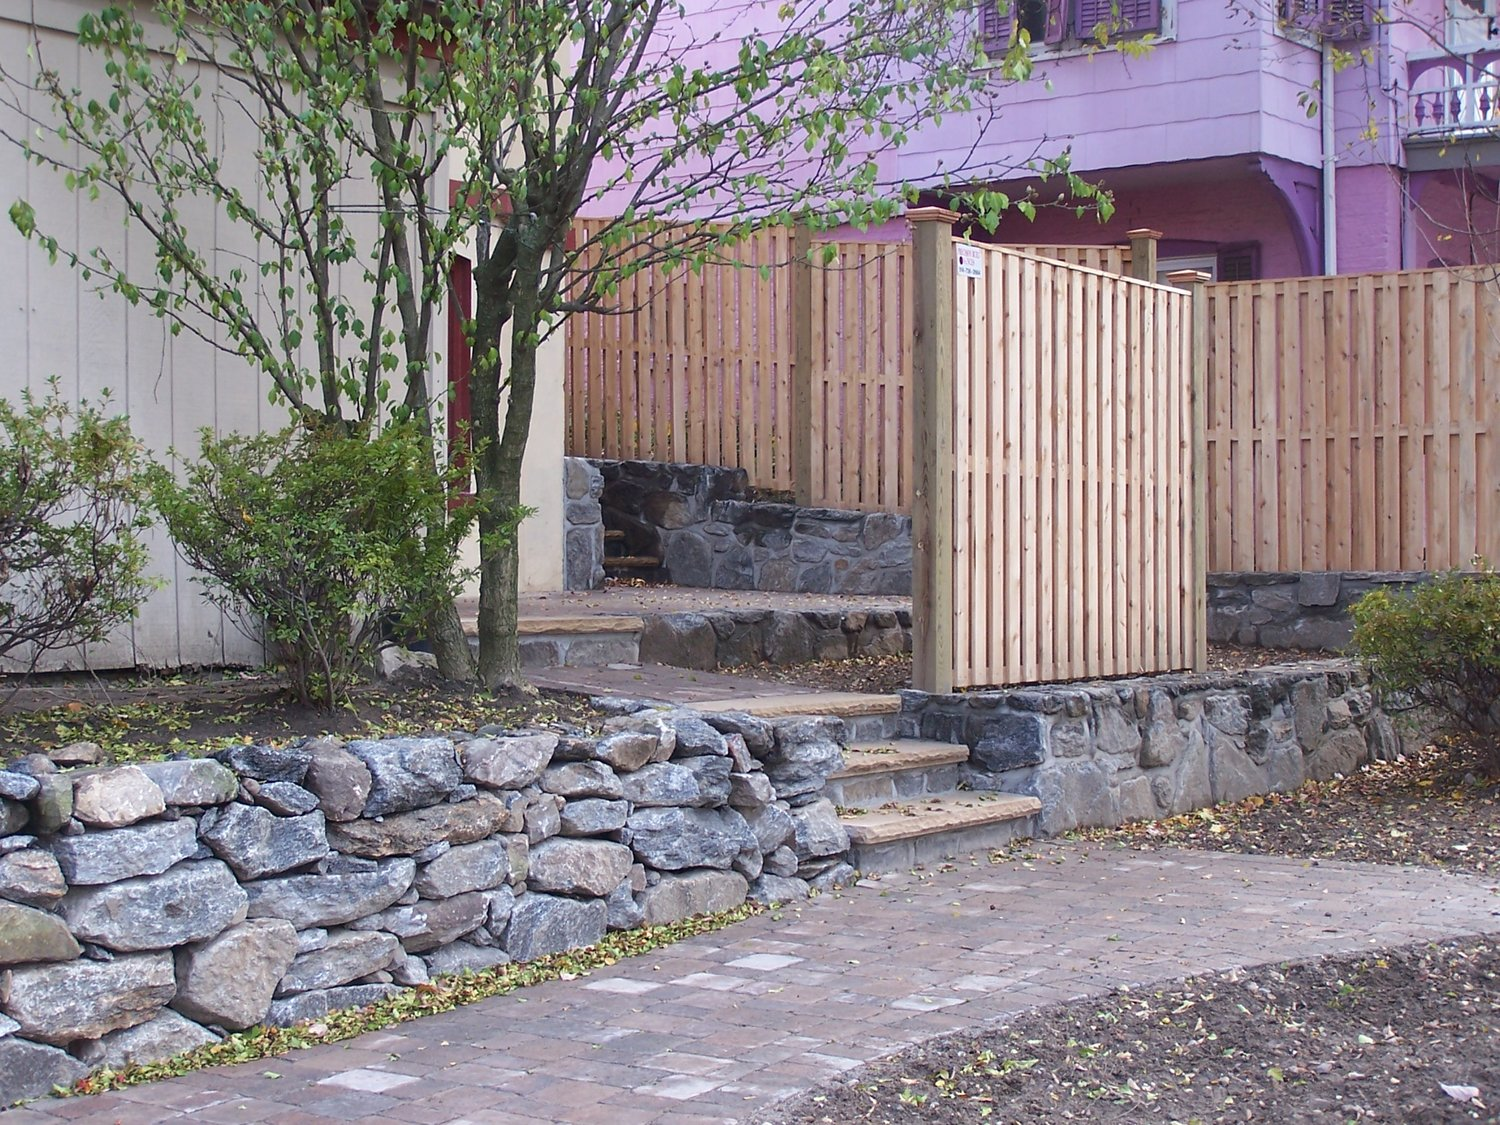 5 Landscaping Ideas For Backyard Privacy In Croton On Hudson Ny